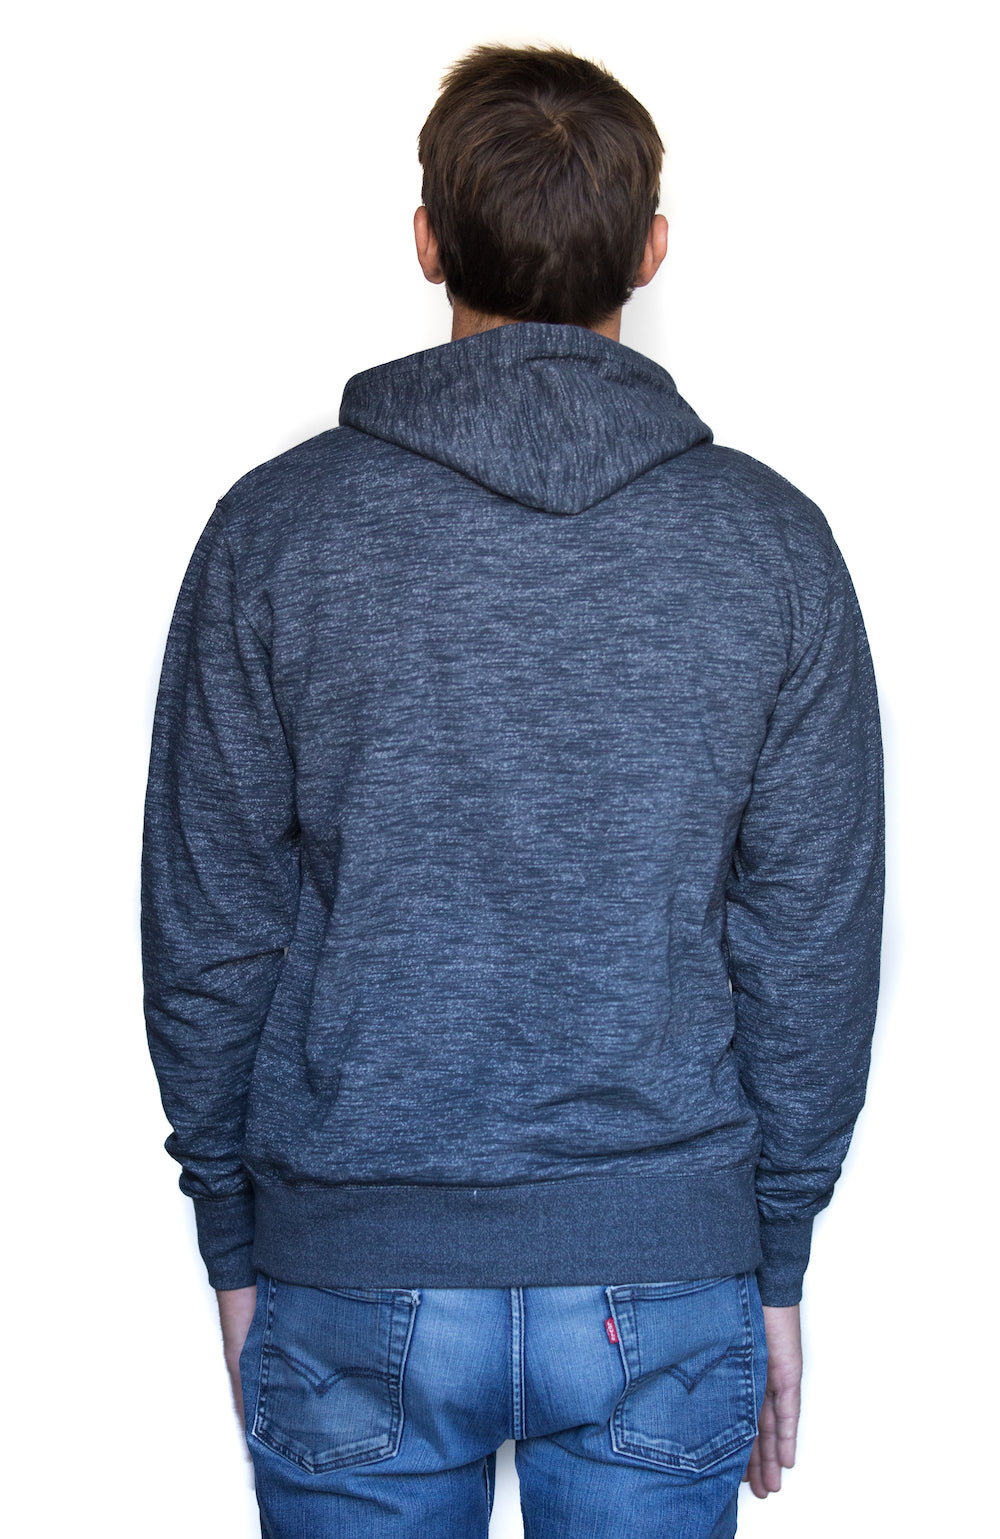 Lost and Found Pullover Hoodie